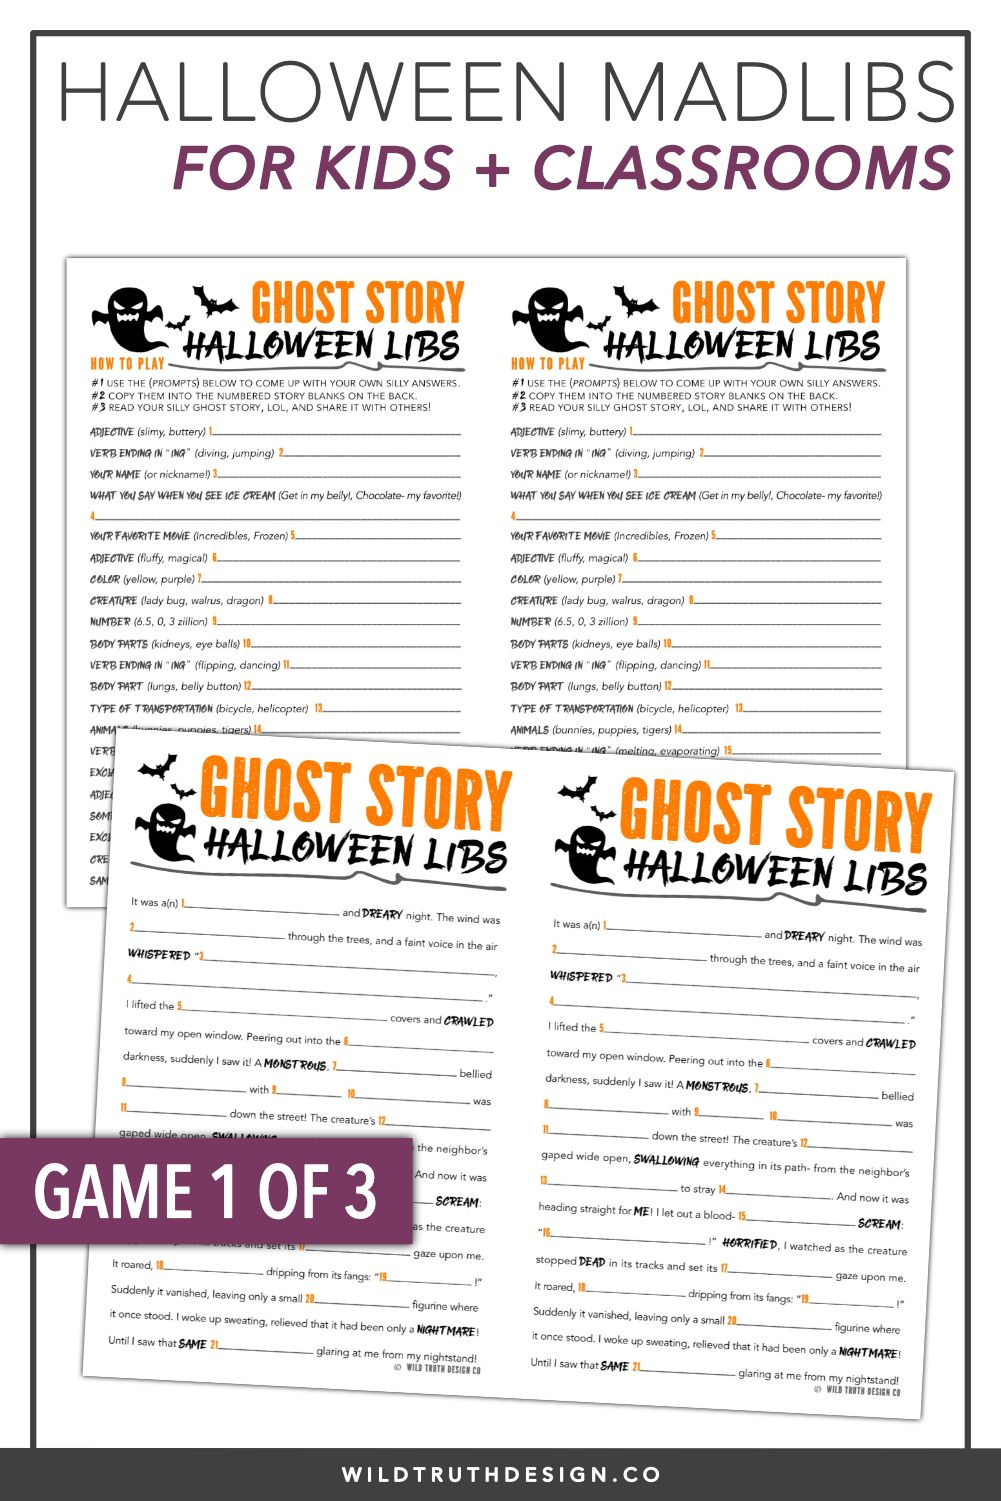 photograph regarding Halloween Mad Libs Printable titled Halloween Higher education Bash Game titles - Ridiculous Libs Crosswords